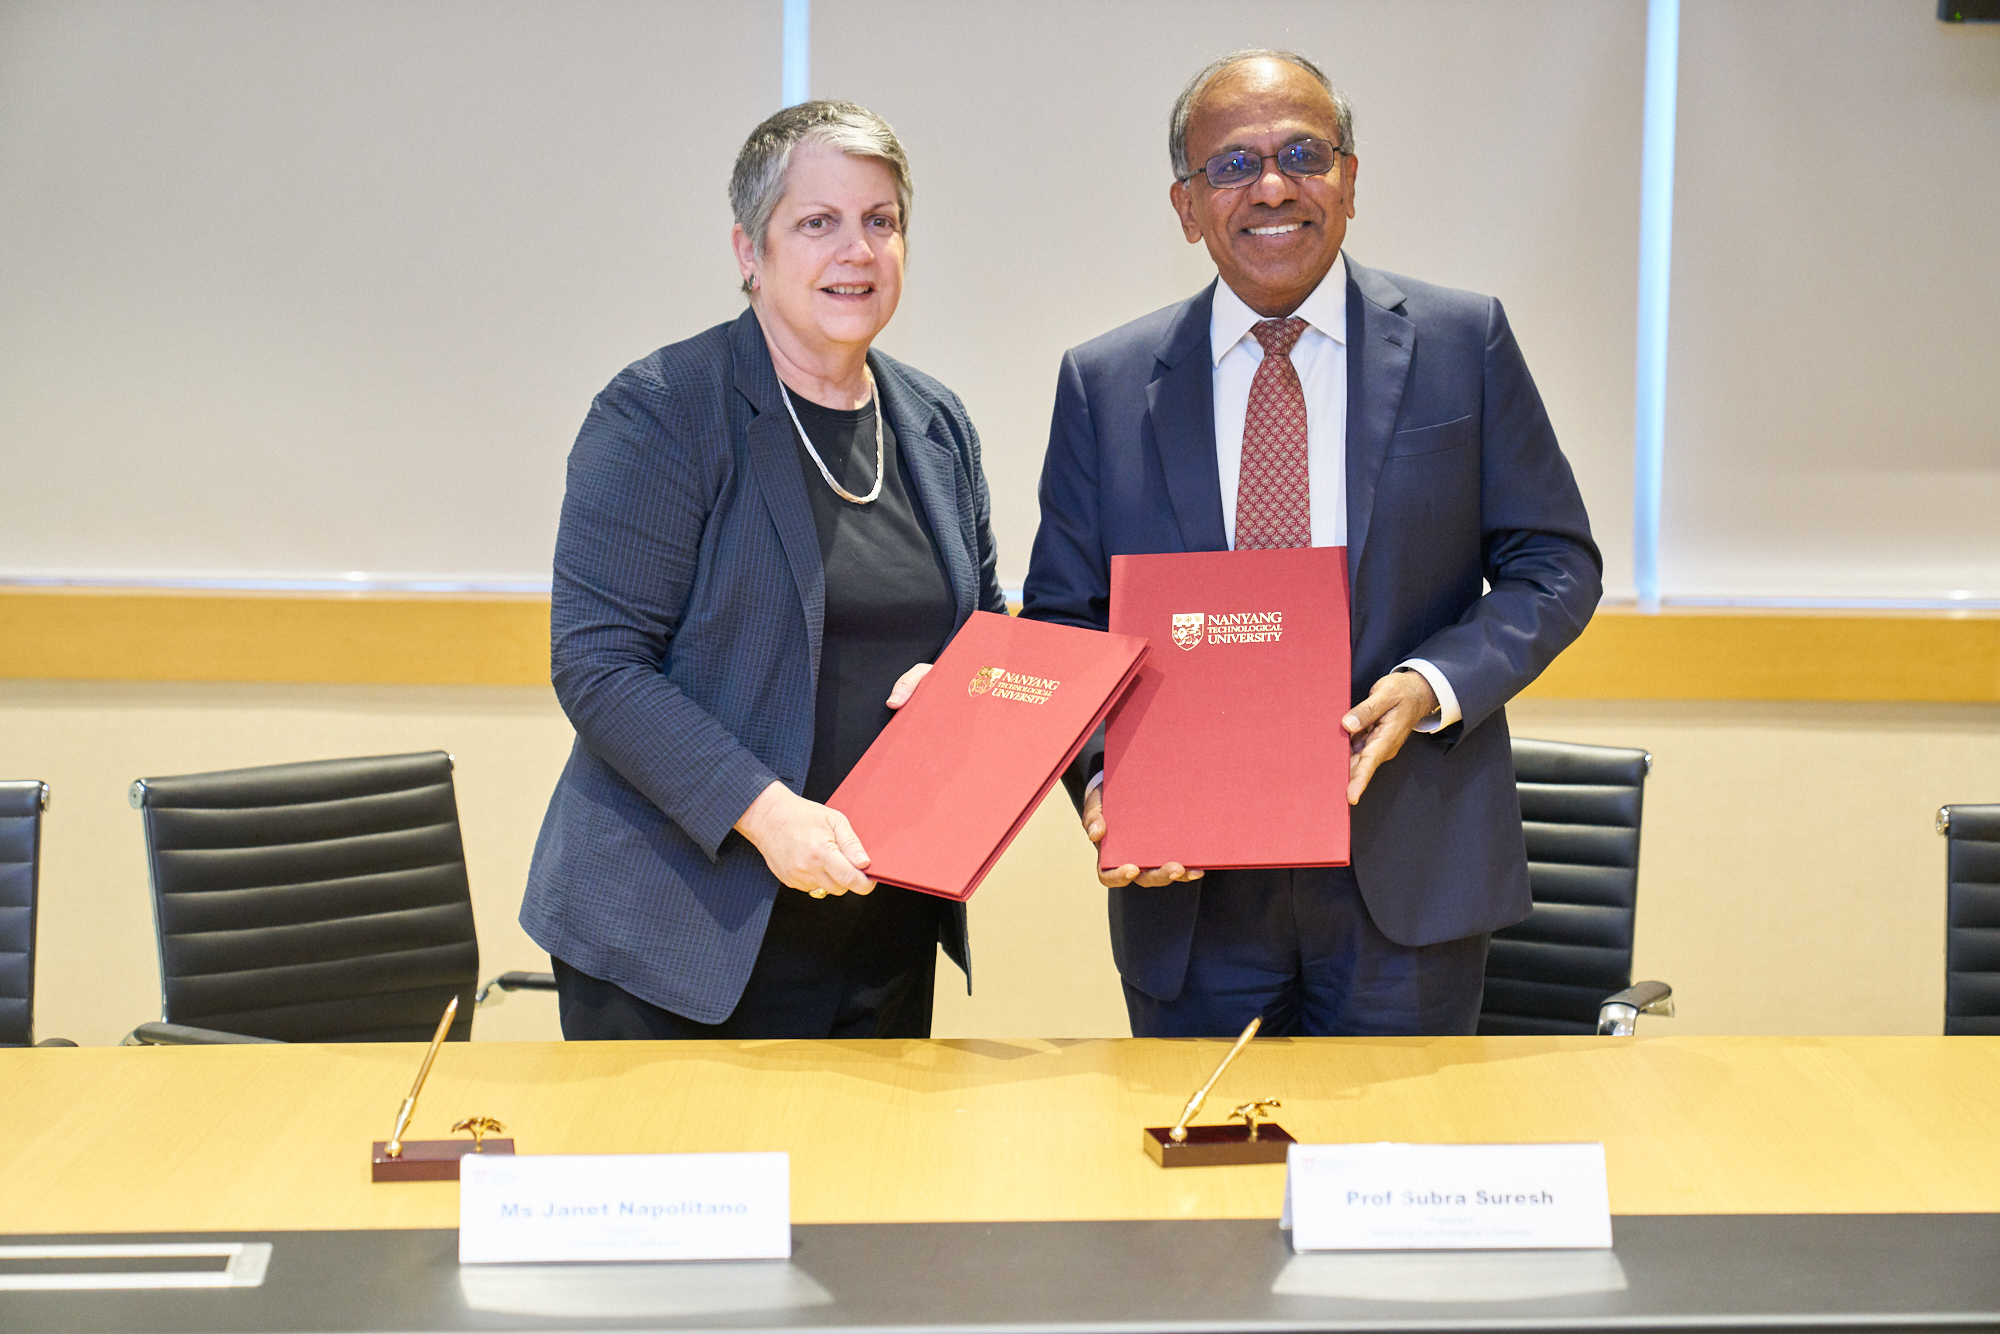 University of California president Janet Napolitano (left) and NTU Singapore president Professor Subra Suresh signed the memorandum of understanding on behalf of their respective institutions. Photo courtesy: NTU